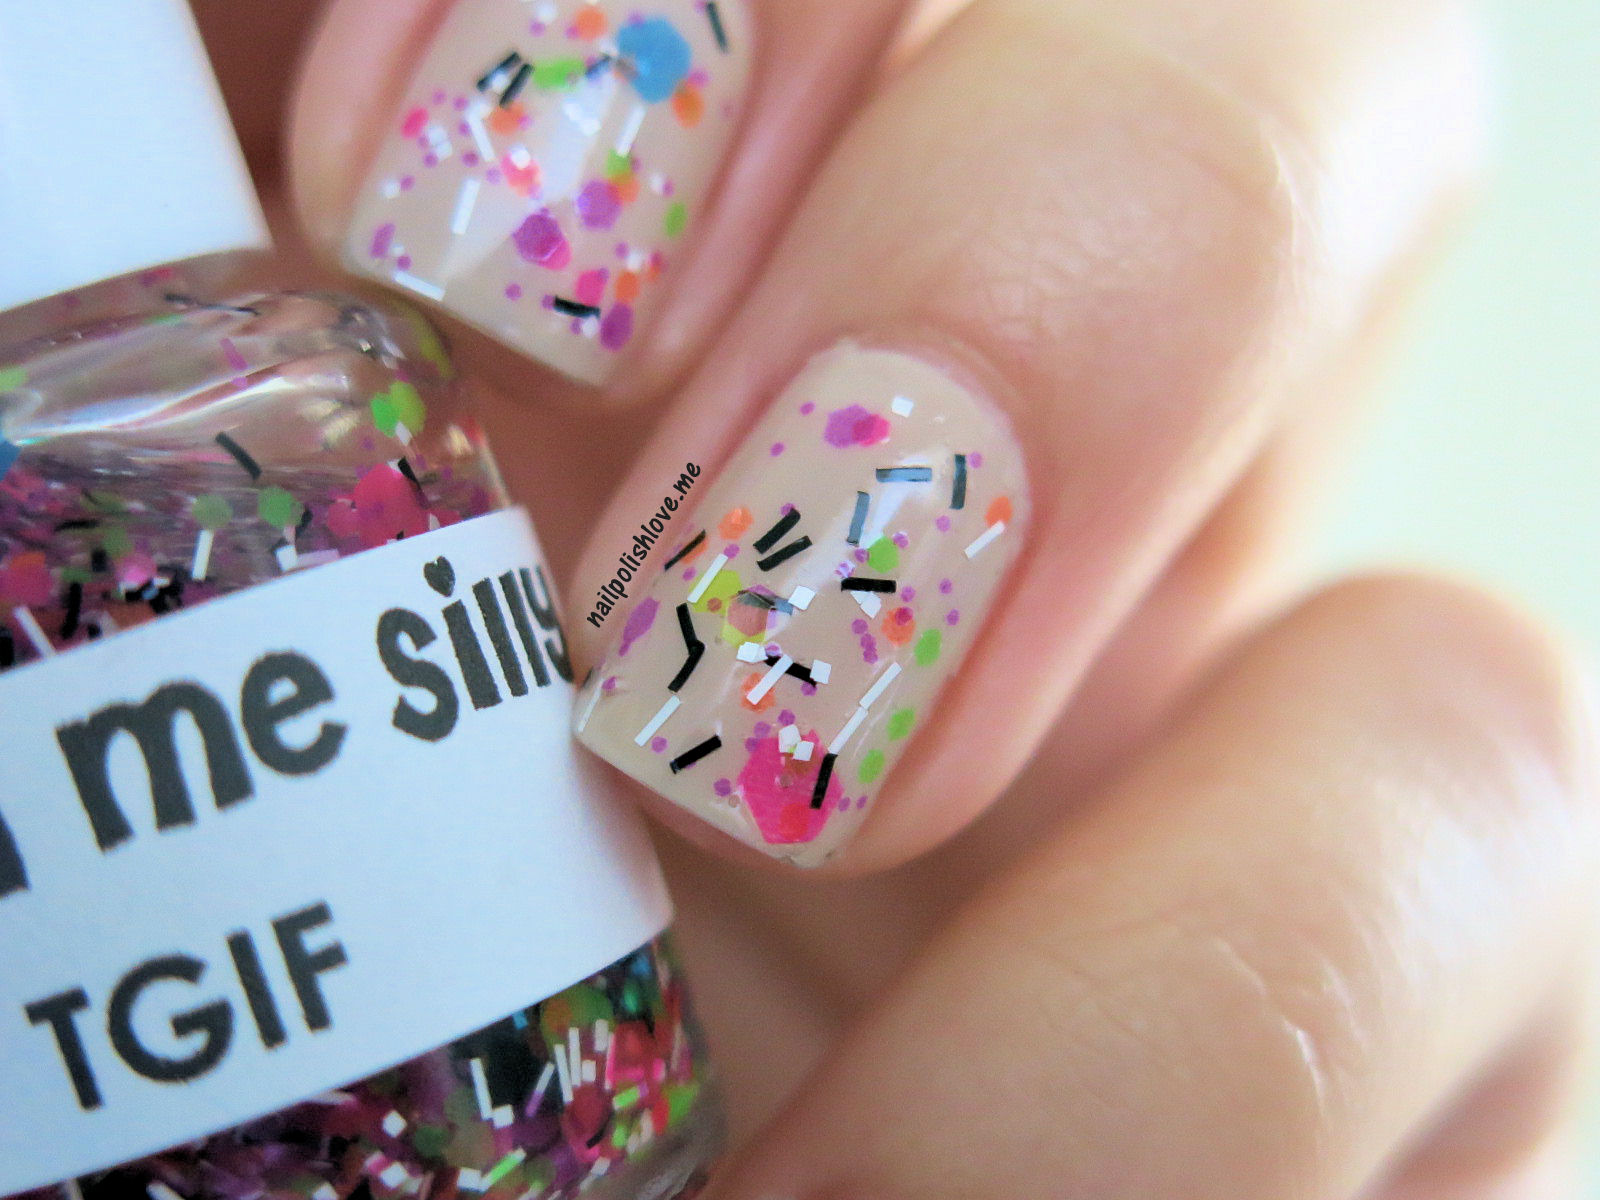 Colores: Mis primeros indie -Polish Me Silly- | Adrix Nails: Uñas ...